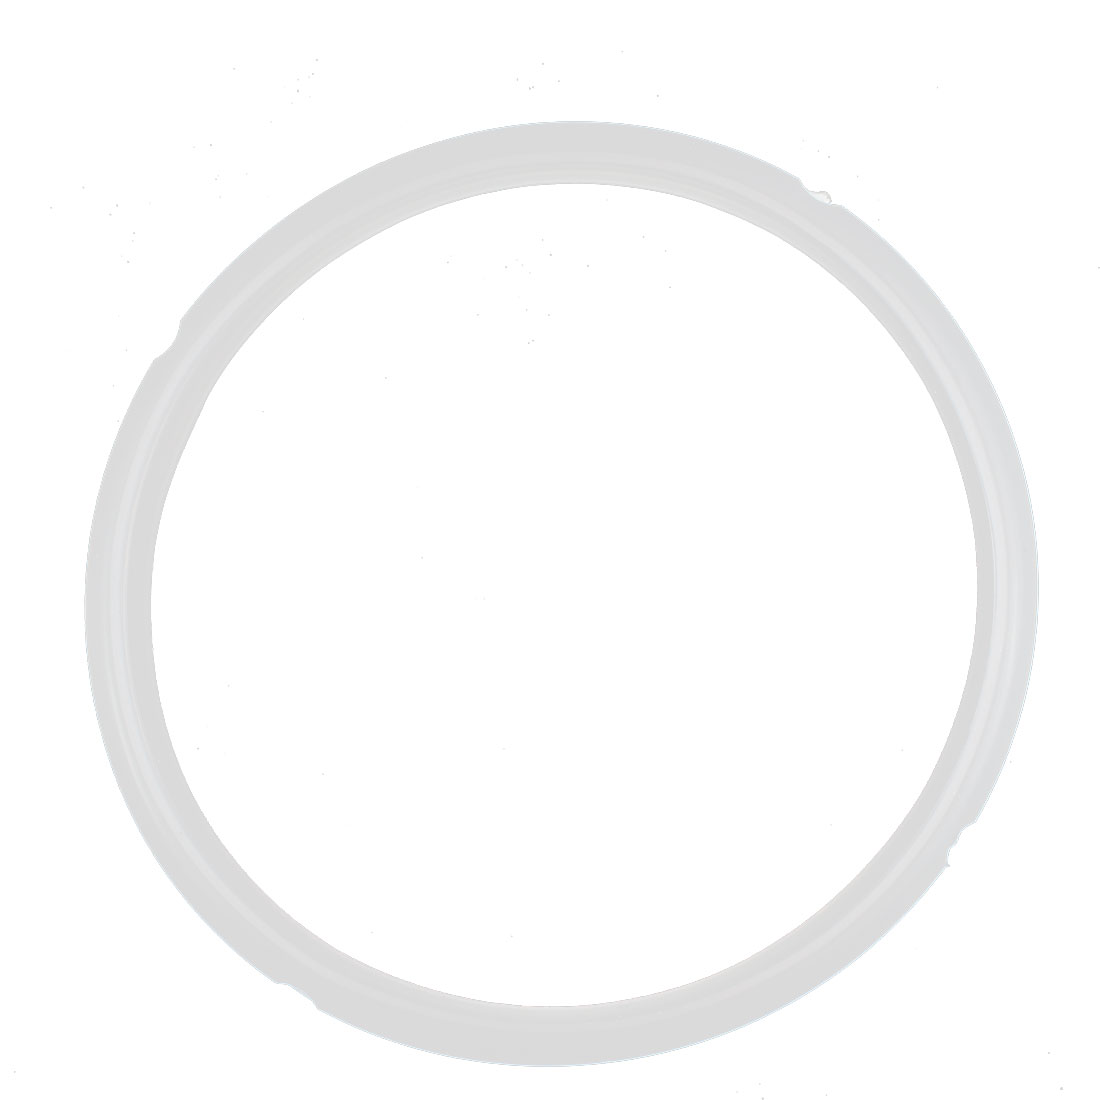 22cm Out Dia White Rubber Gasket Sealing Ring for Pressure Cooker